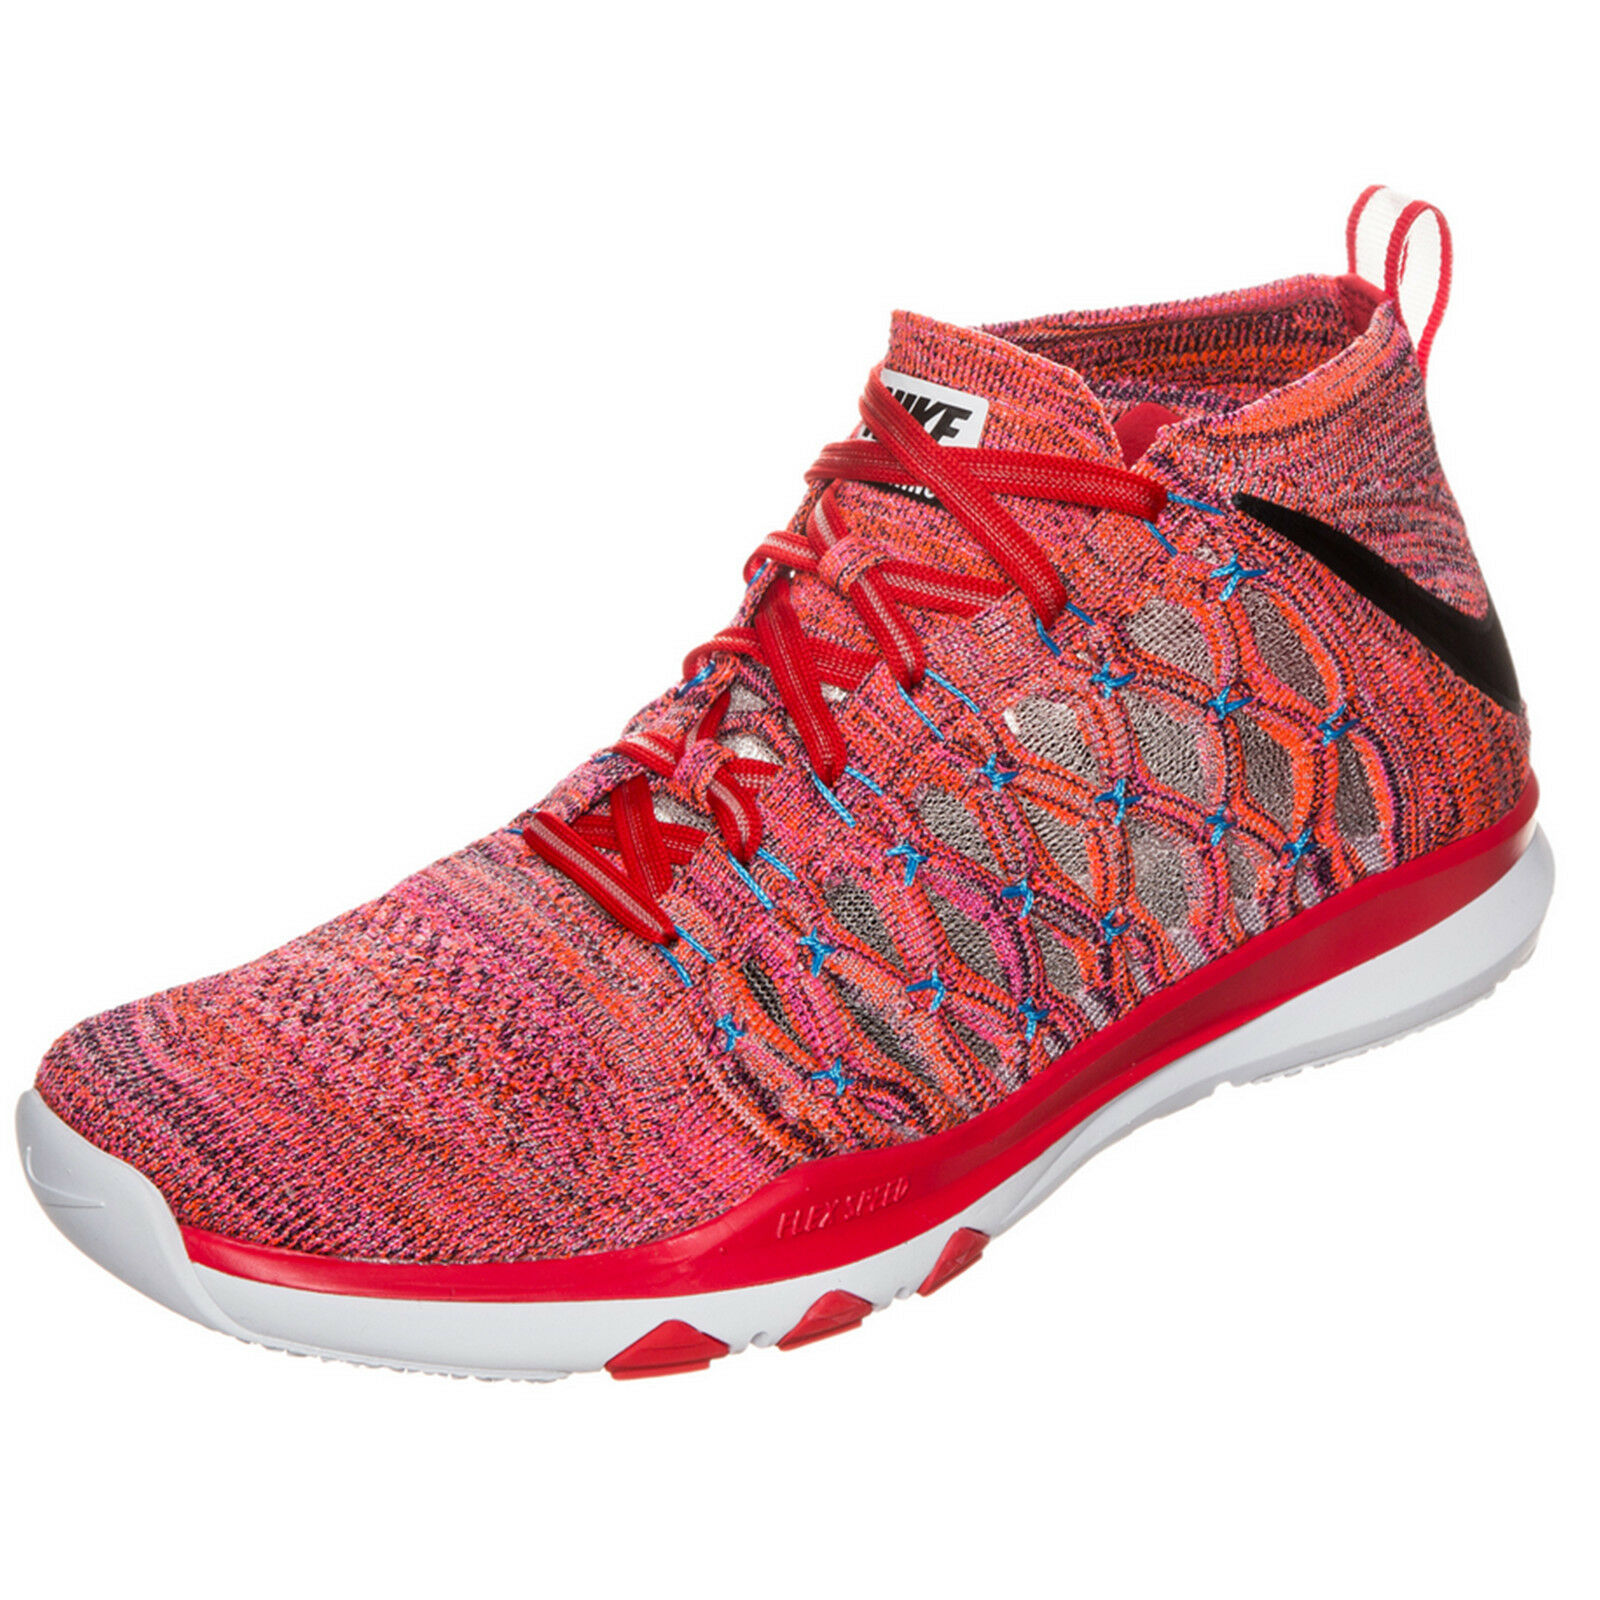 6458925a2901 Nike Men s Train Ultrafast Flyknit Running Shoes Plum Fog Pink ...